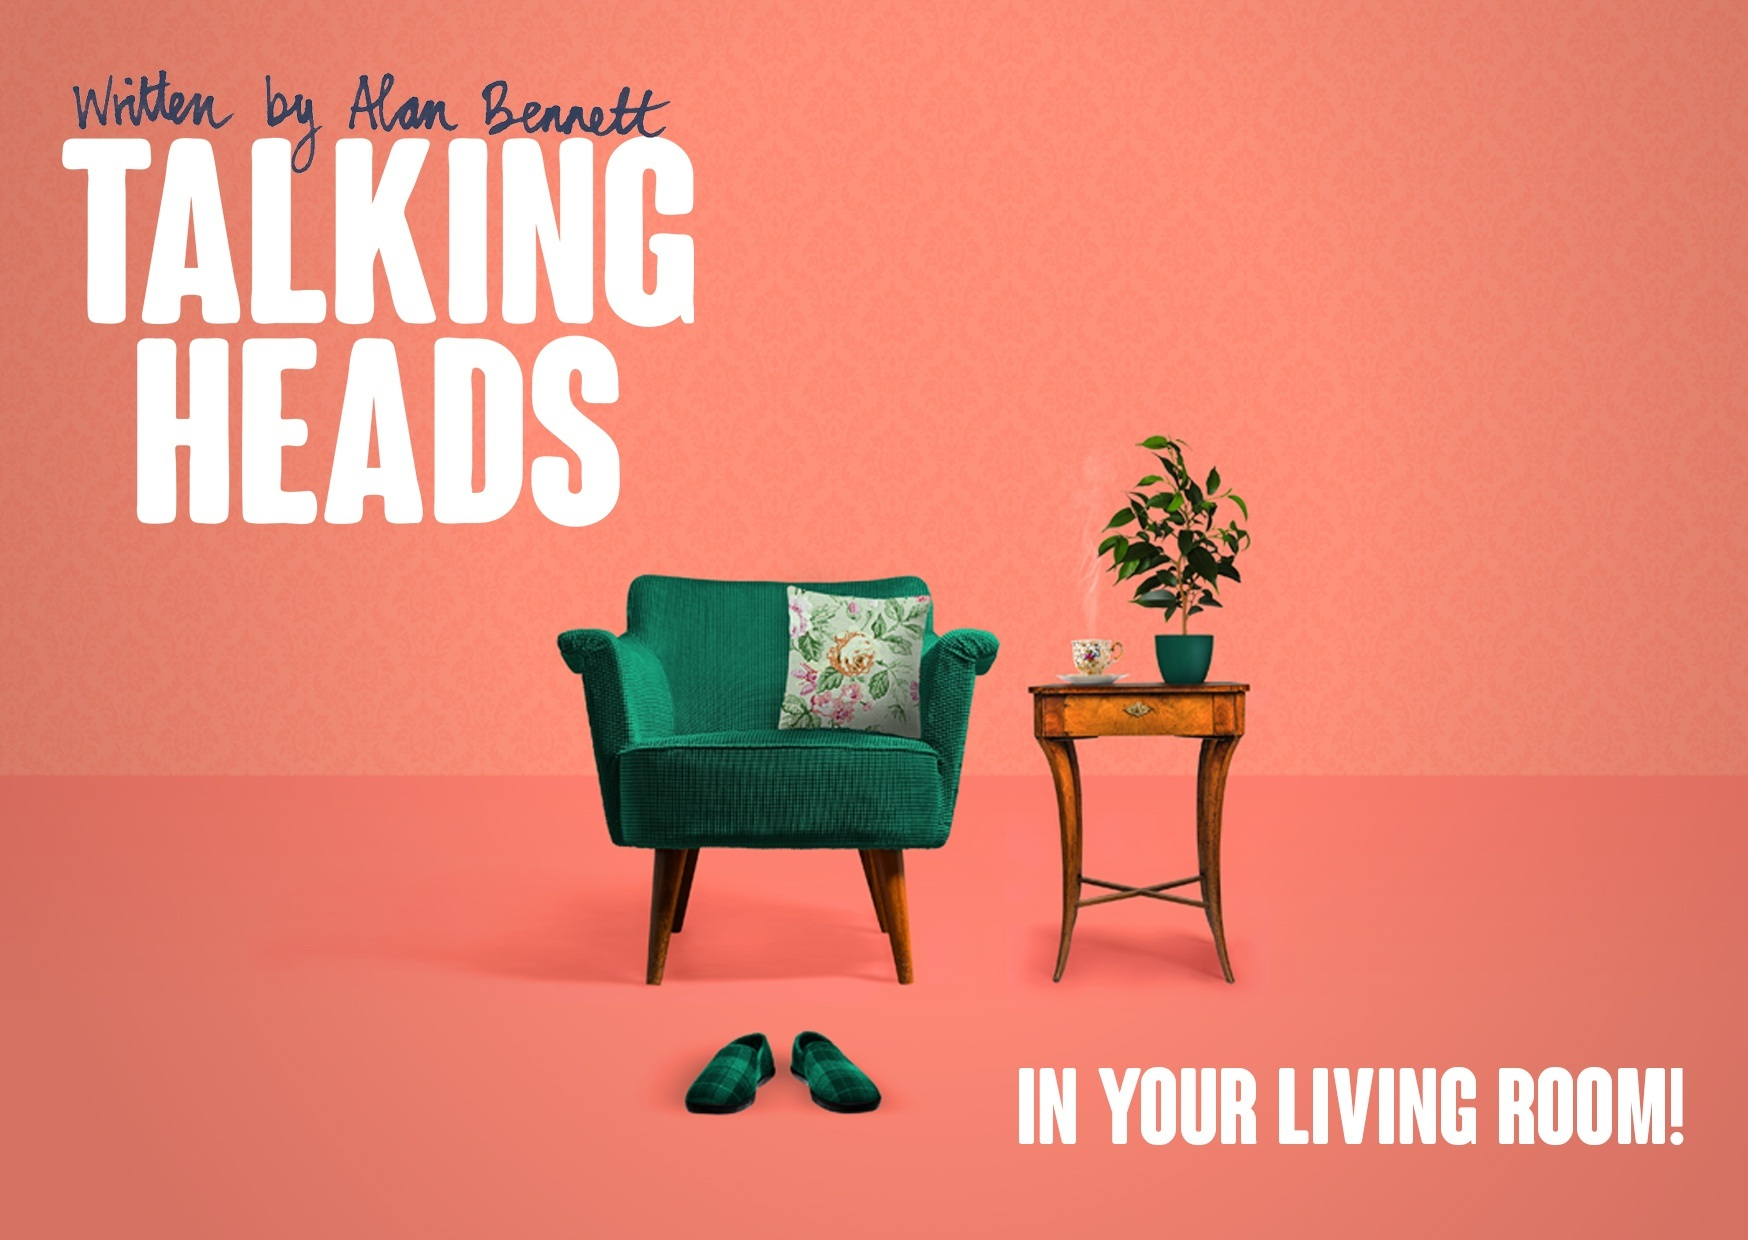 West Yorkshire Playhouse to take Alan Bennett's Talking Heads to all Leeds postcodes